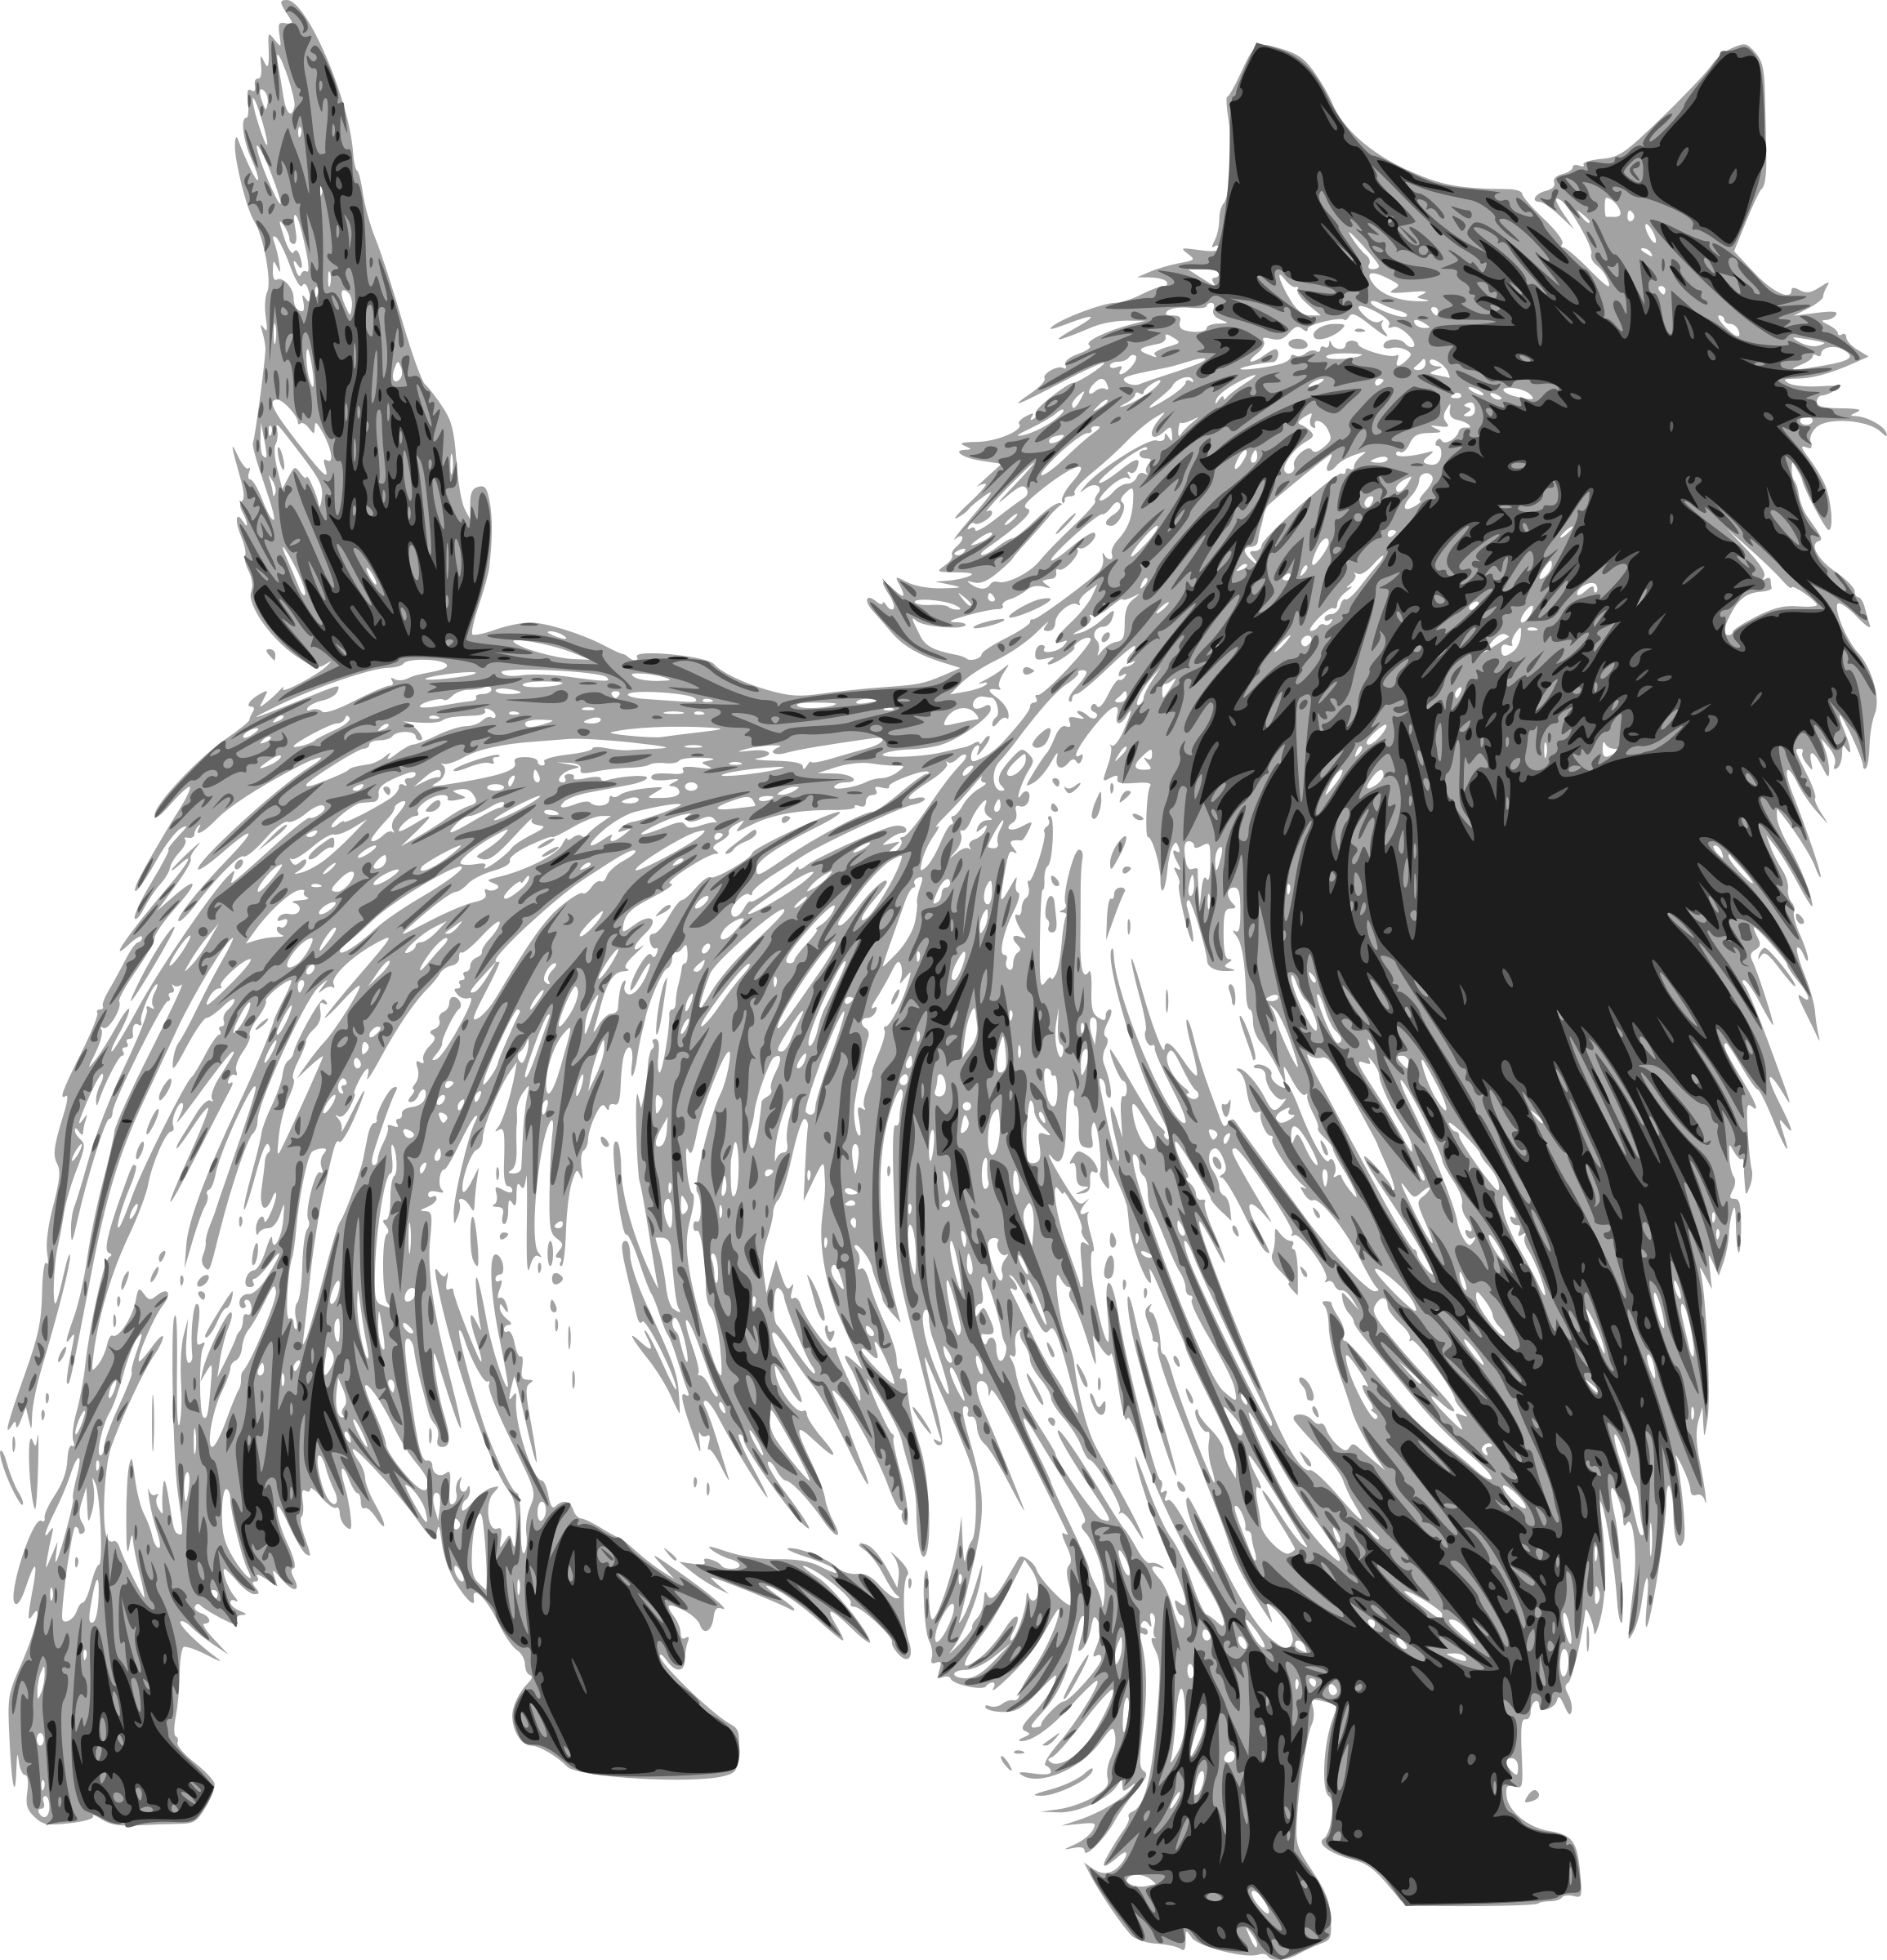 Hand clipart dog. Cairn terrier big image